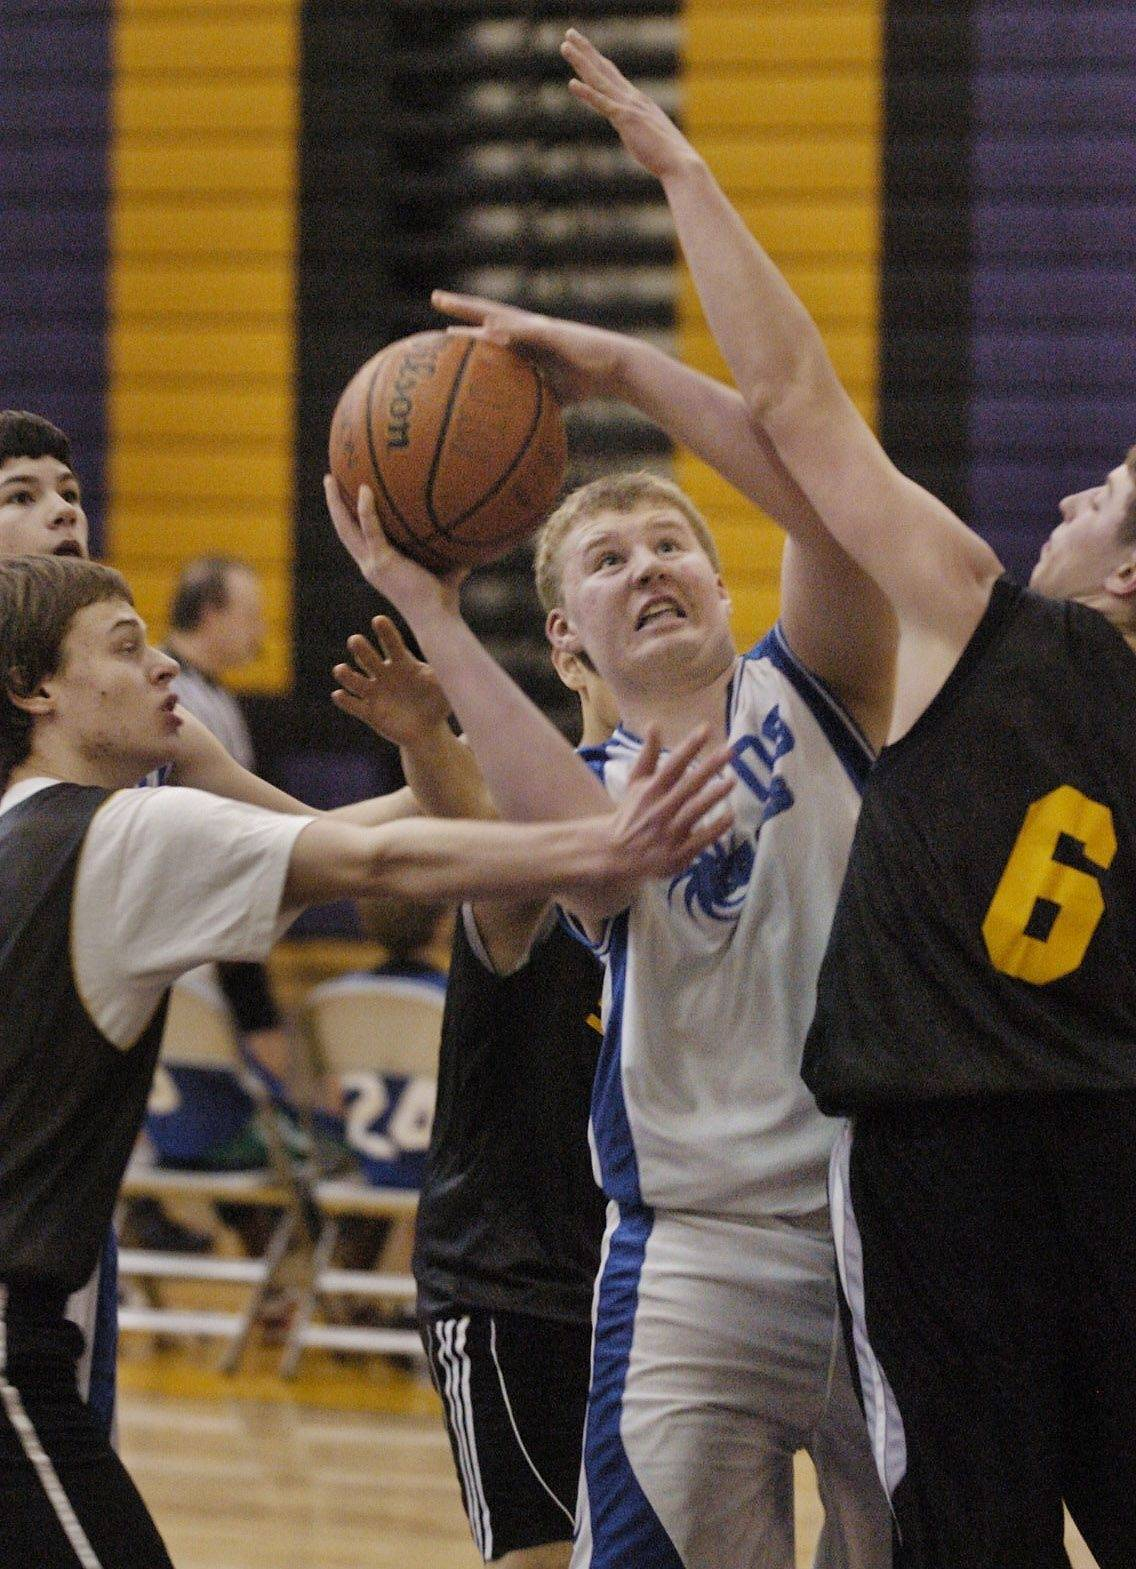 Eighth-grader Chase Mangioni, center, of the Wauconda Cylones battles for a bucket against the team from Elgin Homeschool during a charity basketball tournament hosted by the Wauconda Cyclones basketball teams at Wauconda High School.